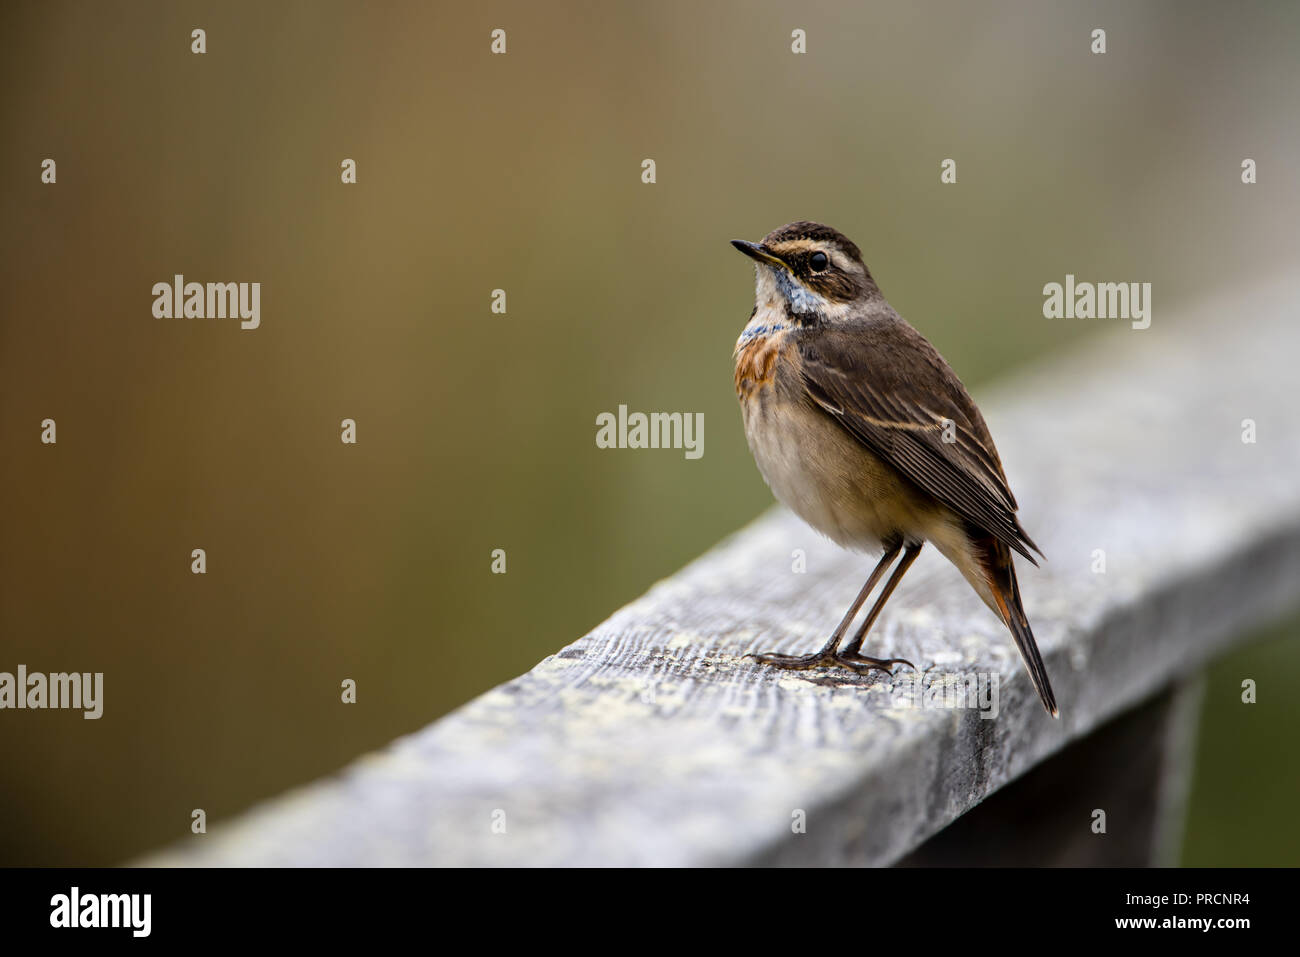 Bluethroat (Luscinia svecica, 1st-w) perching on the wooden railing with a nice defocused background. - Stock Image